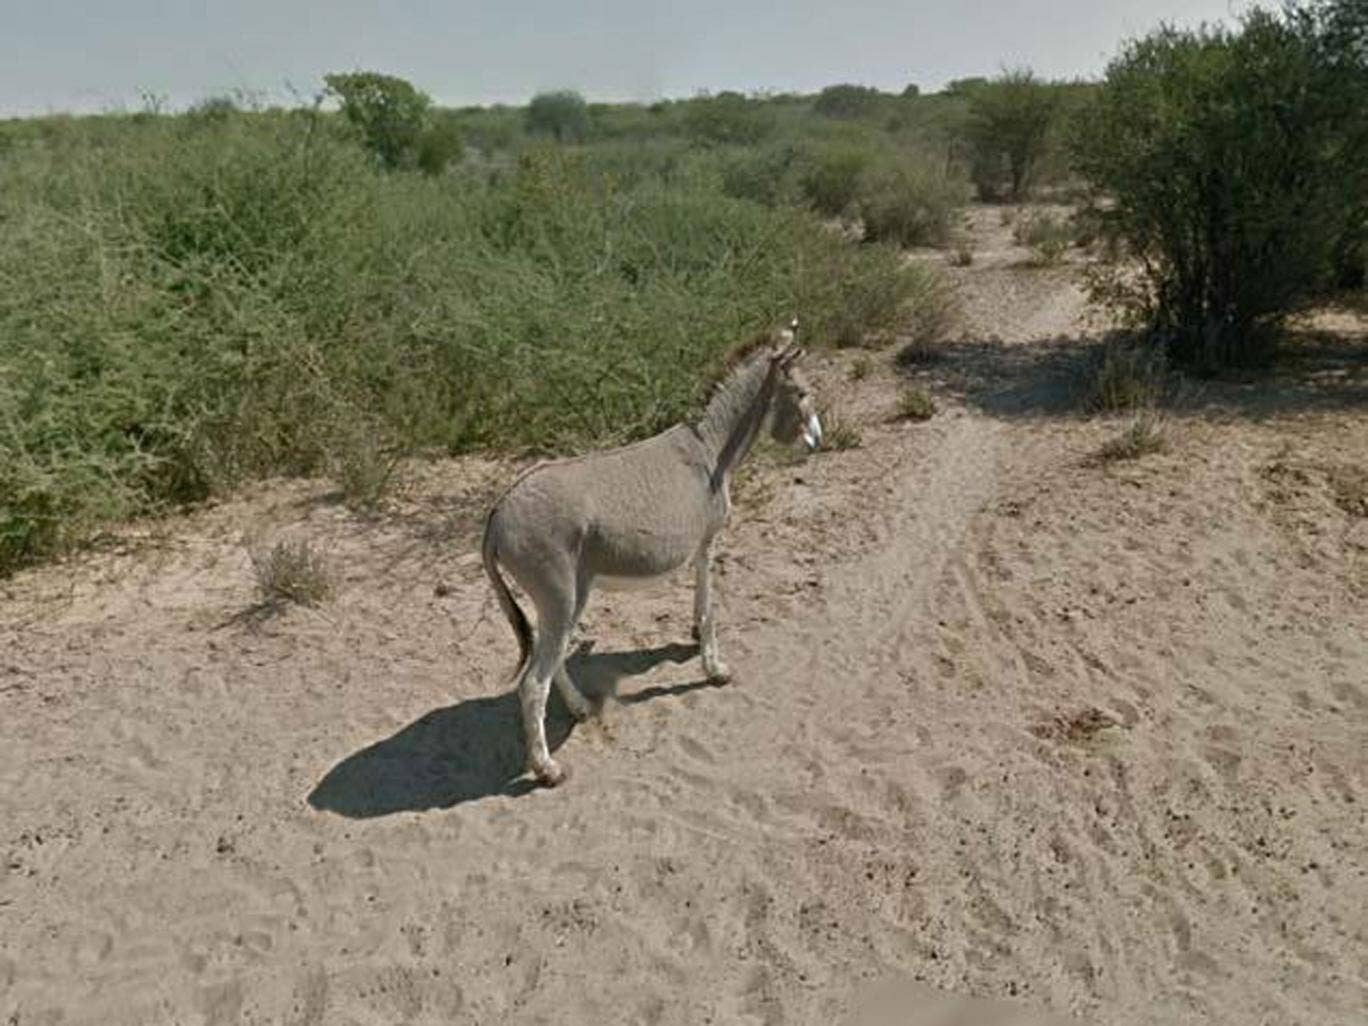 Google has managed to prove that its Street View team did not run over the donkey in Botswana